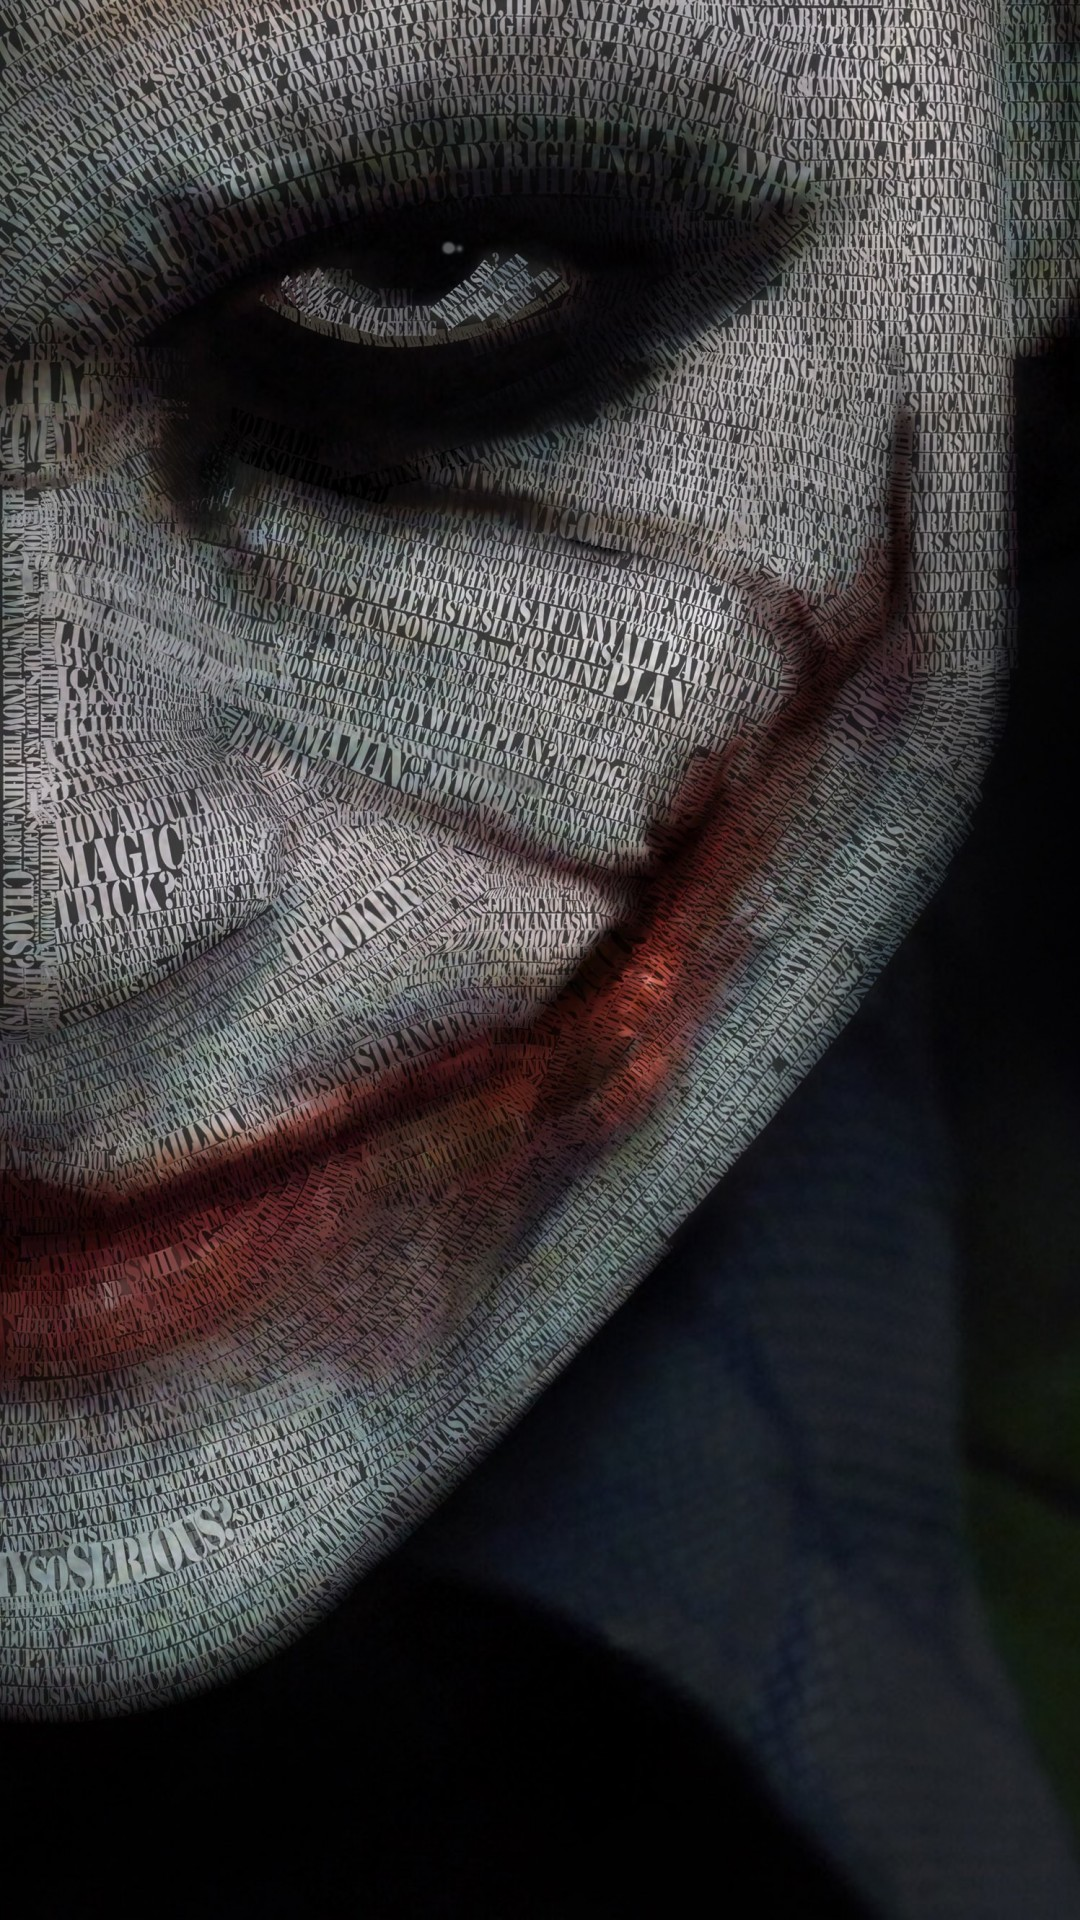 The Joker Typeface Portrait Wallpaper for SAMSUNG Galaxy S4